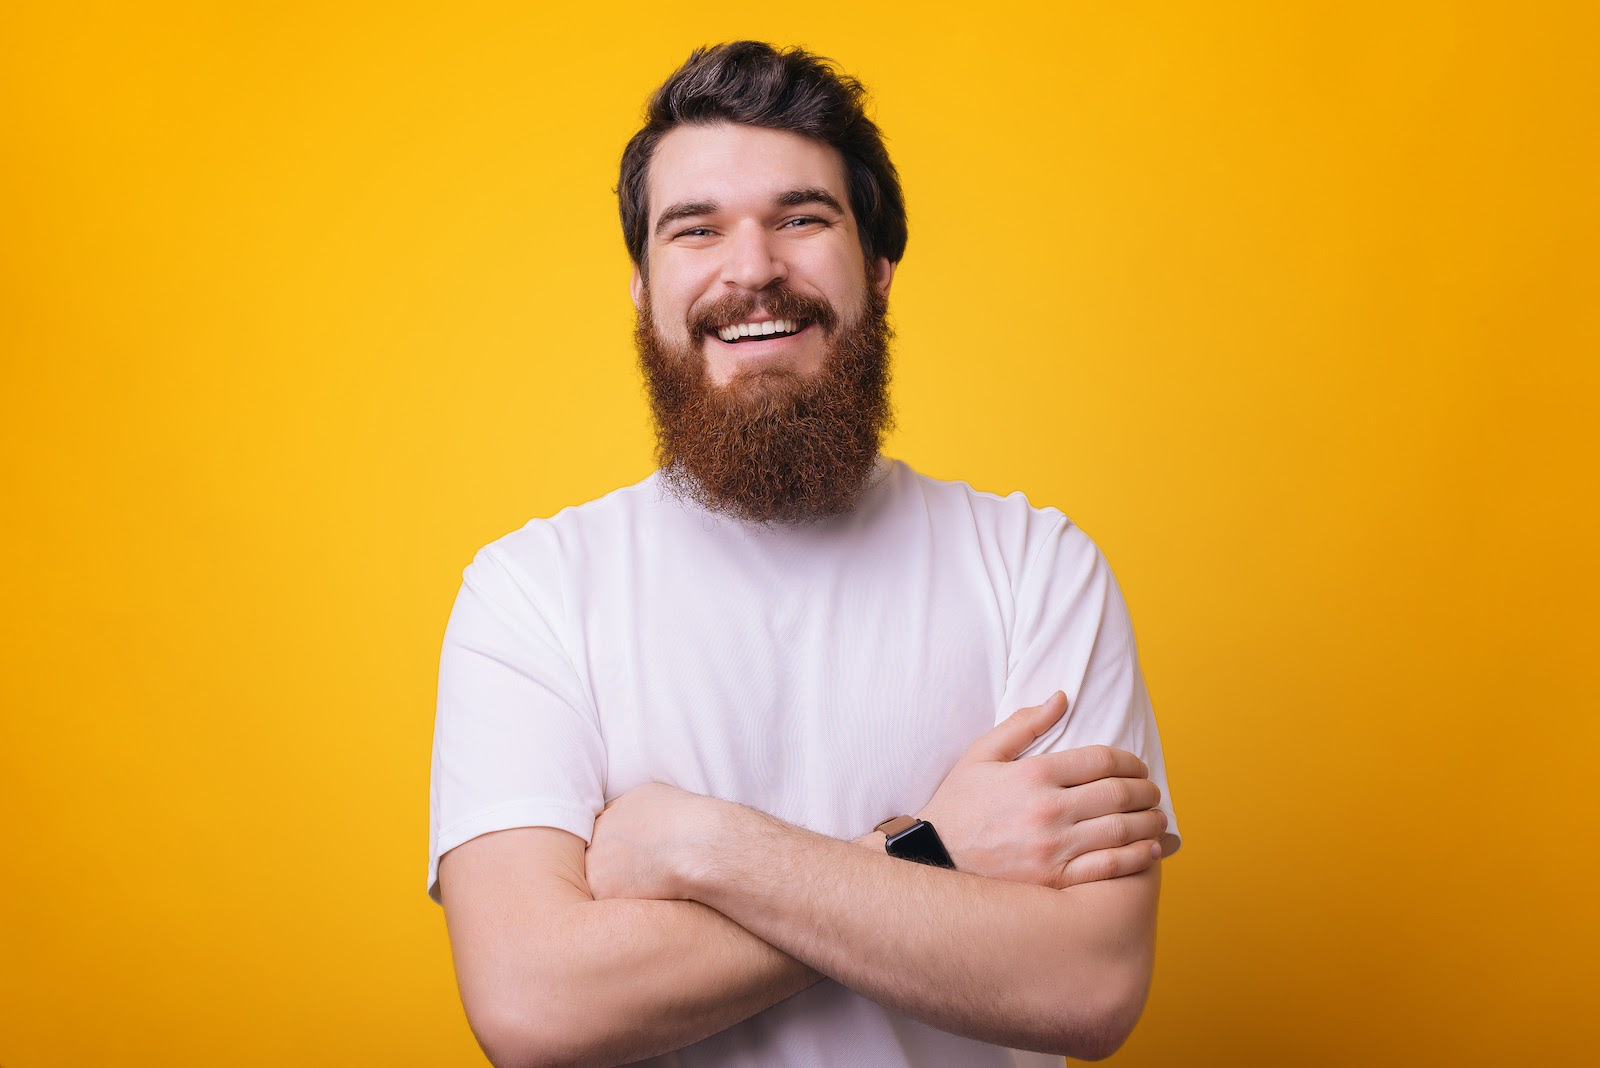 A man looks happy about engagement marketing